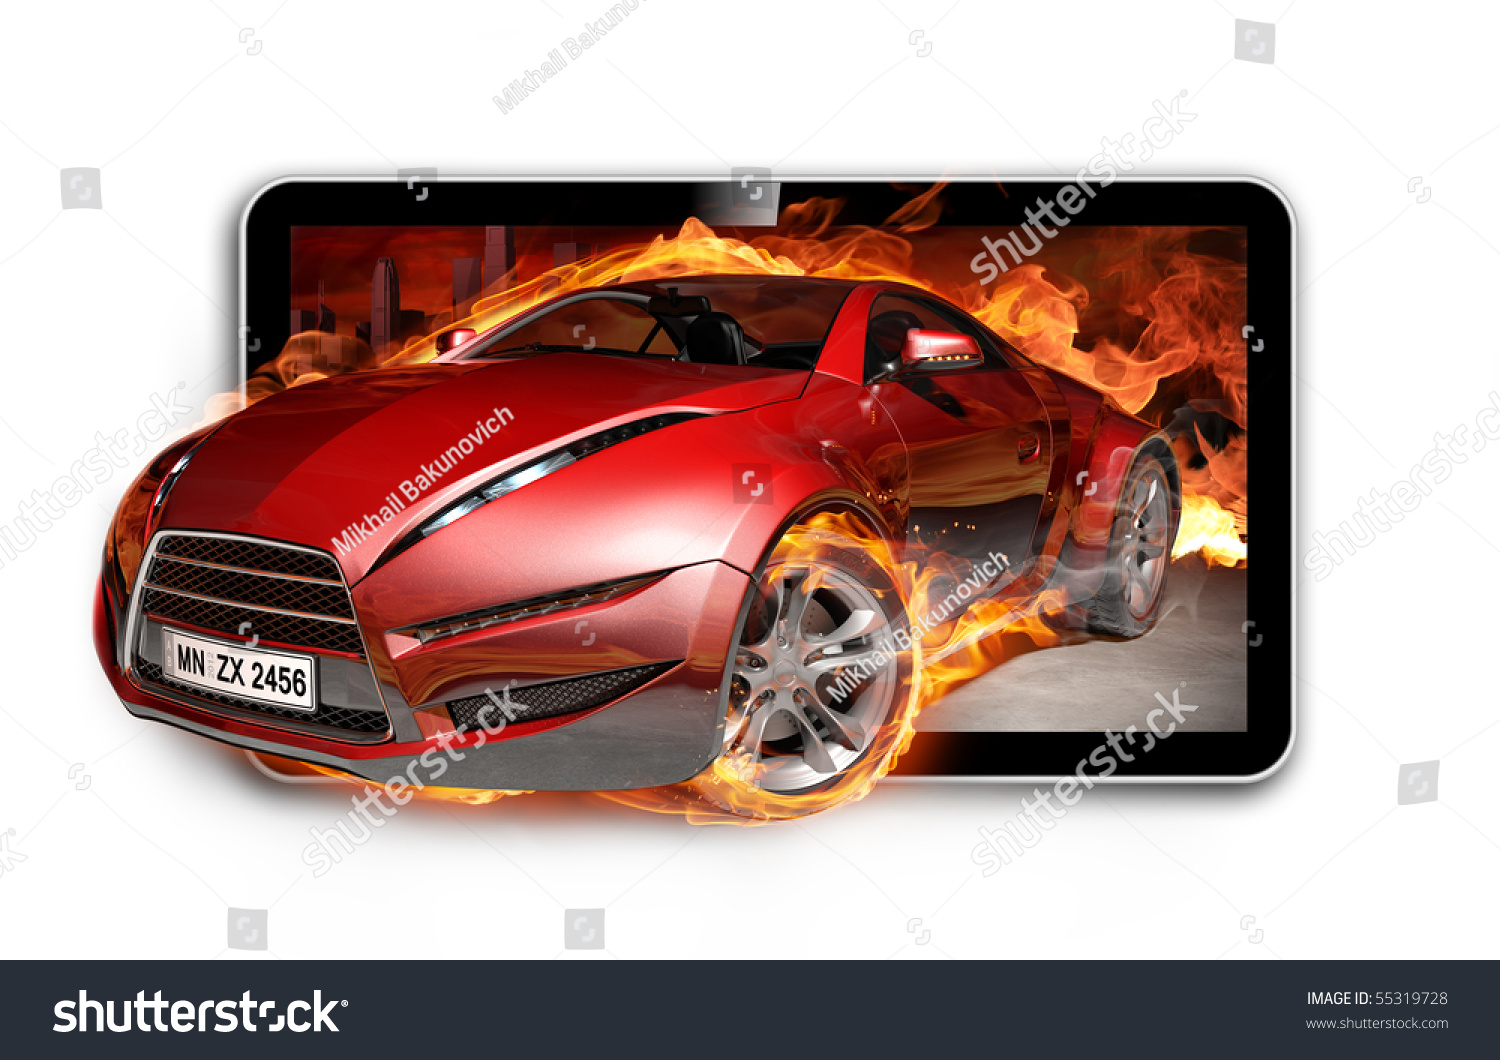 3d tv burning sports car on tv screen stock photo 55319728 shutterstock. Black Bedroom Furniture Sets. Home Design Ideas